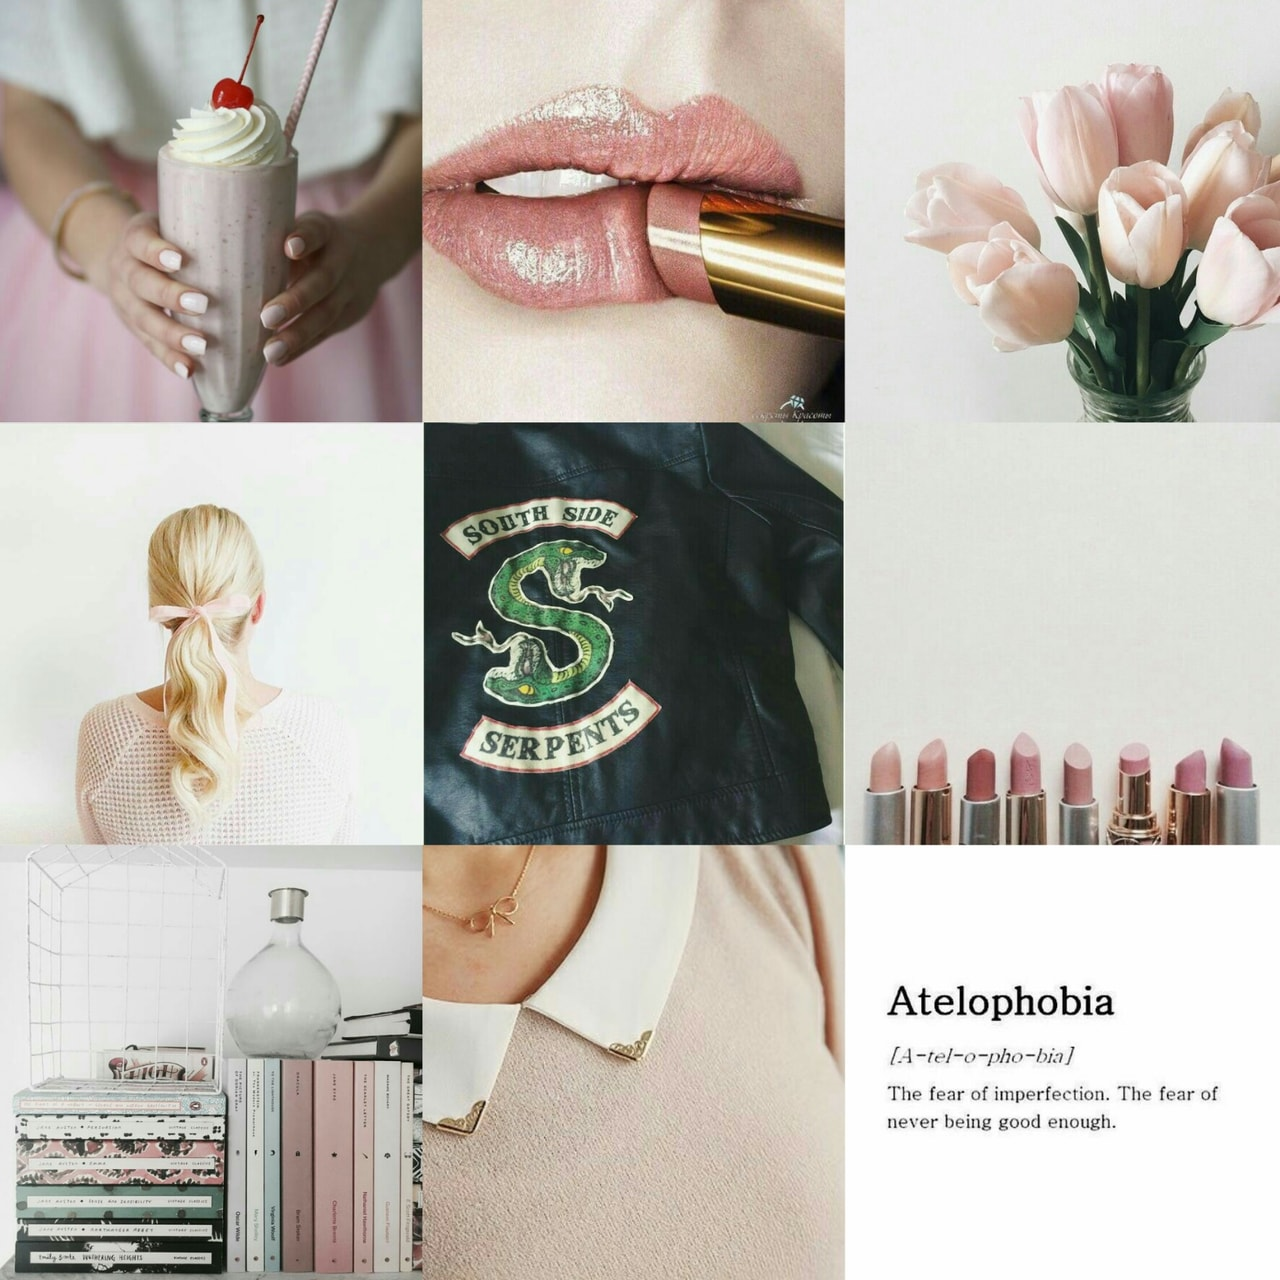 milkshakes, pink aesthetic, riverdale aesthetic and betty cooper